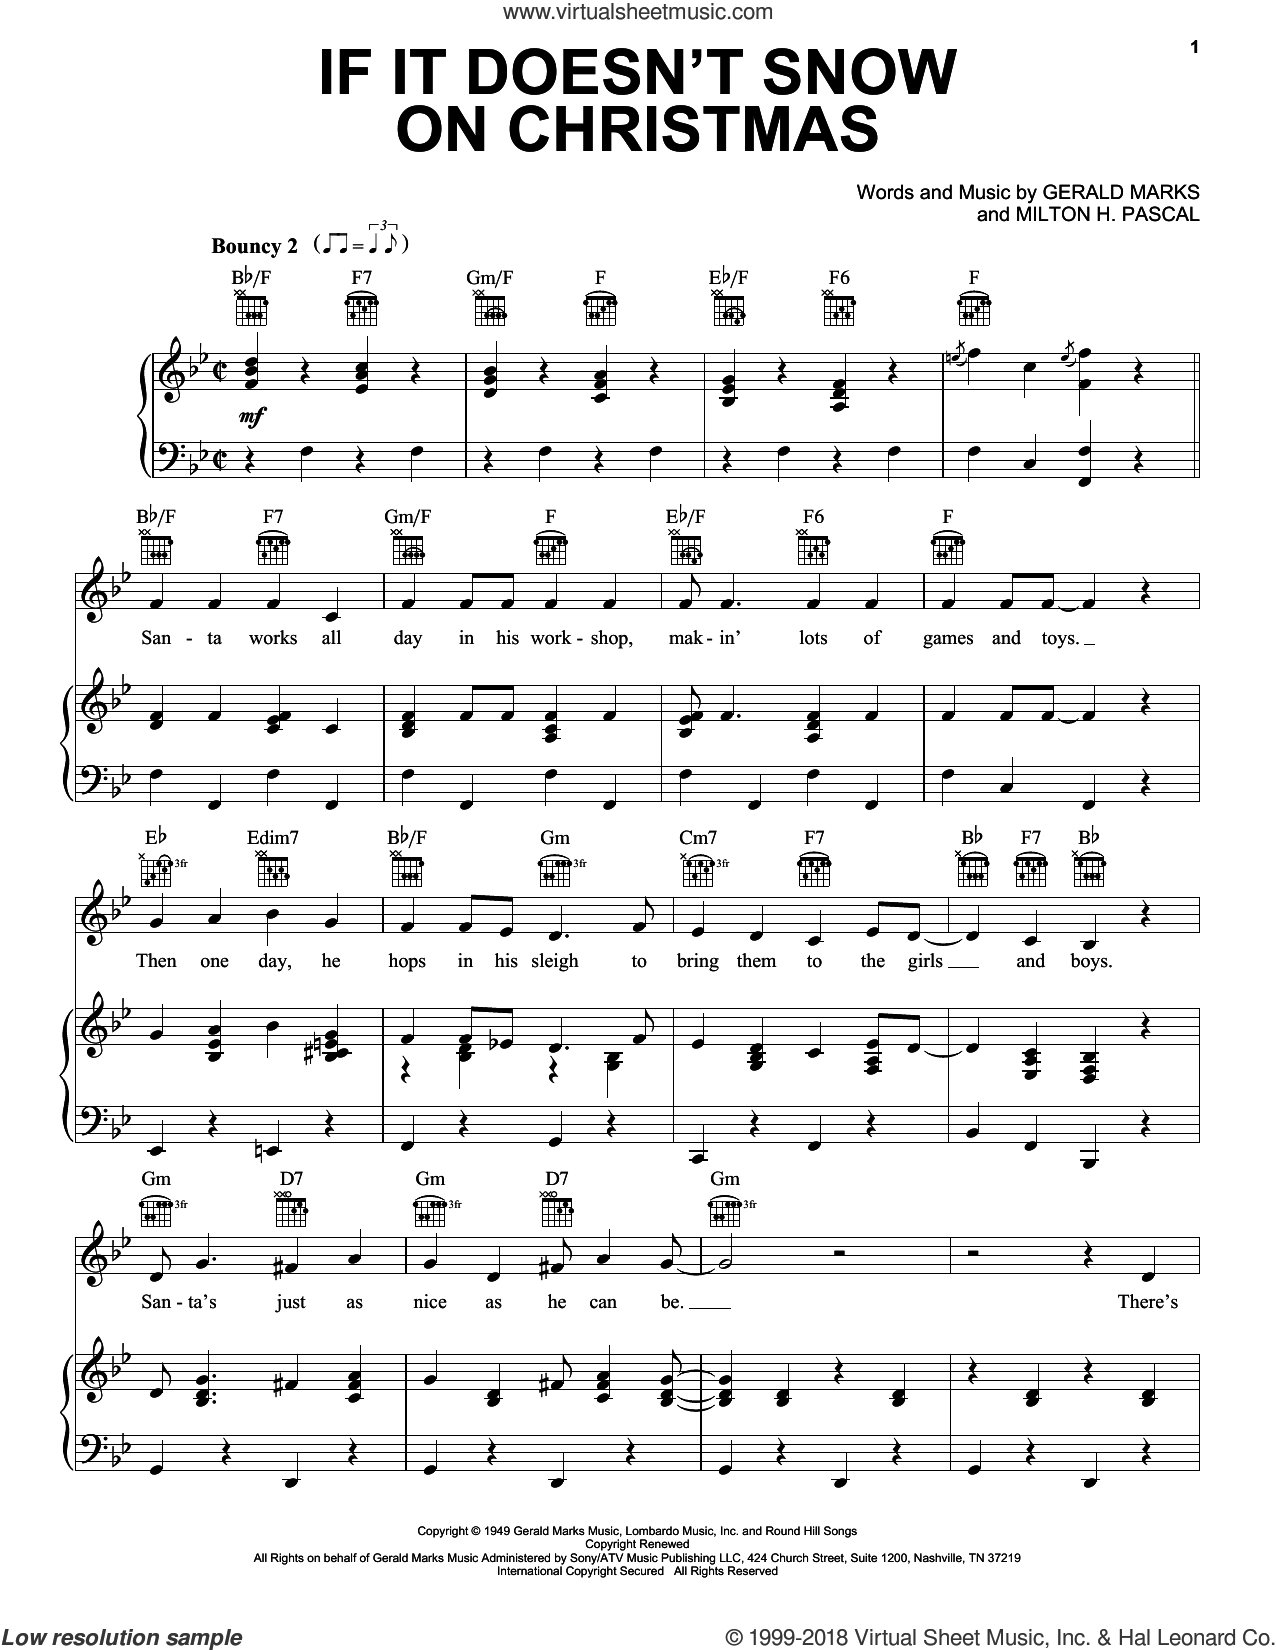 If It Doesn't Snow On Christmas sheet music for voice, piano or guitar by Gene Autry, Gerald Marks and Milton H. Pascal, intermediate skill level